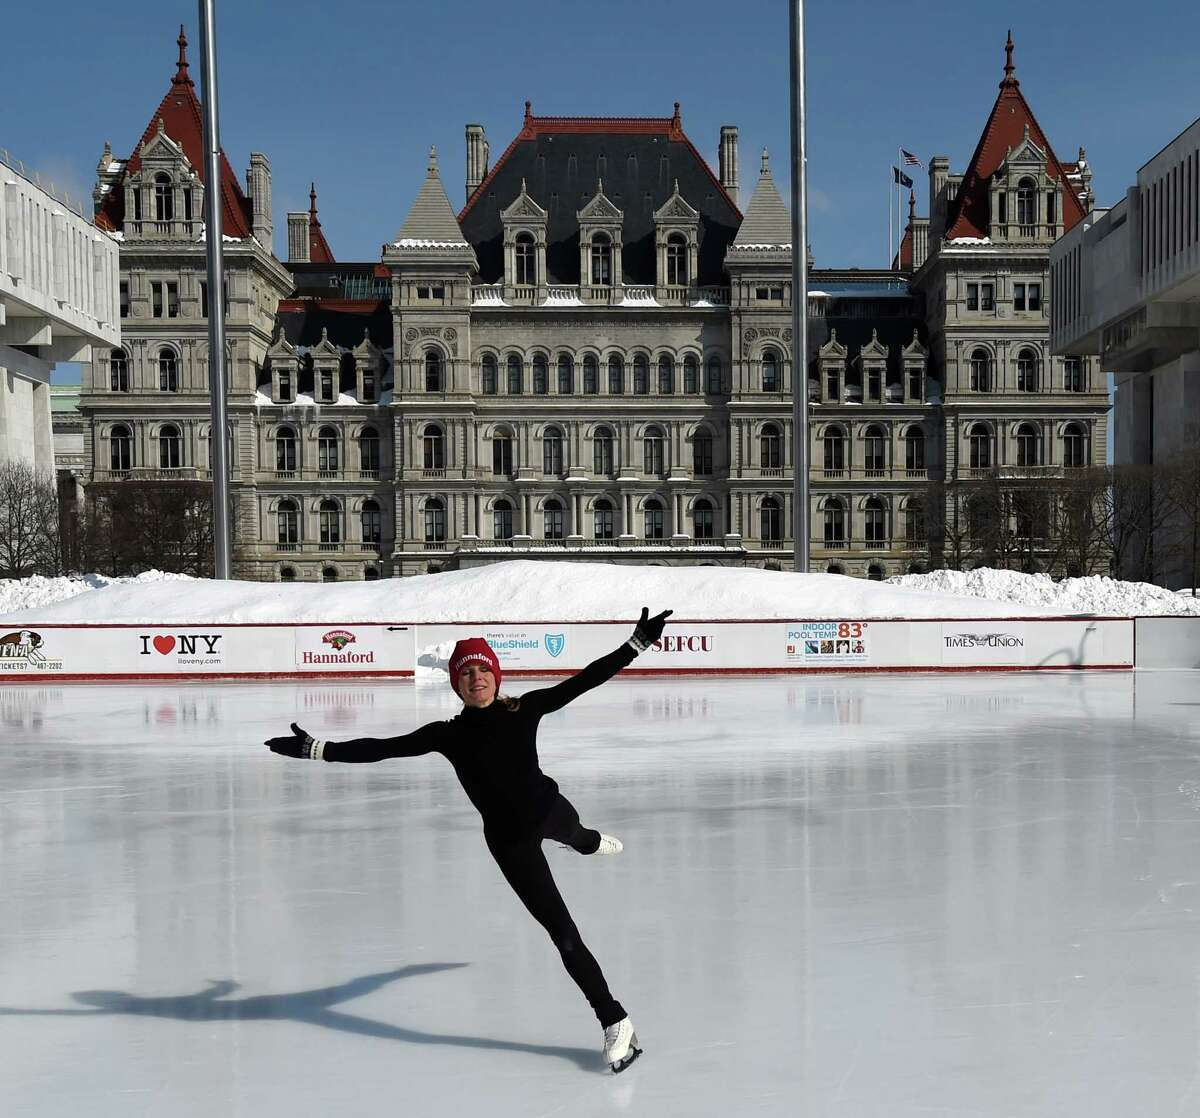 Two-time Olympic gold medalist Ekaterina Gordeeva performs at the Empire State Plaza Friday morning, Feb. 20, 2015, in Albany, N.Y. Gordeeva's appearance was courtesy of Hannaford which underwrites free skate rental each Friday at the Empire State Plaza ice rink. (Skip Dickstein/Times Union)